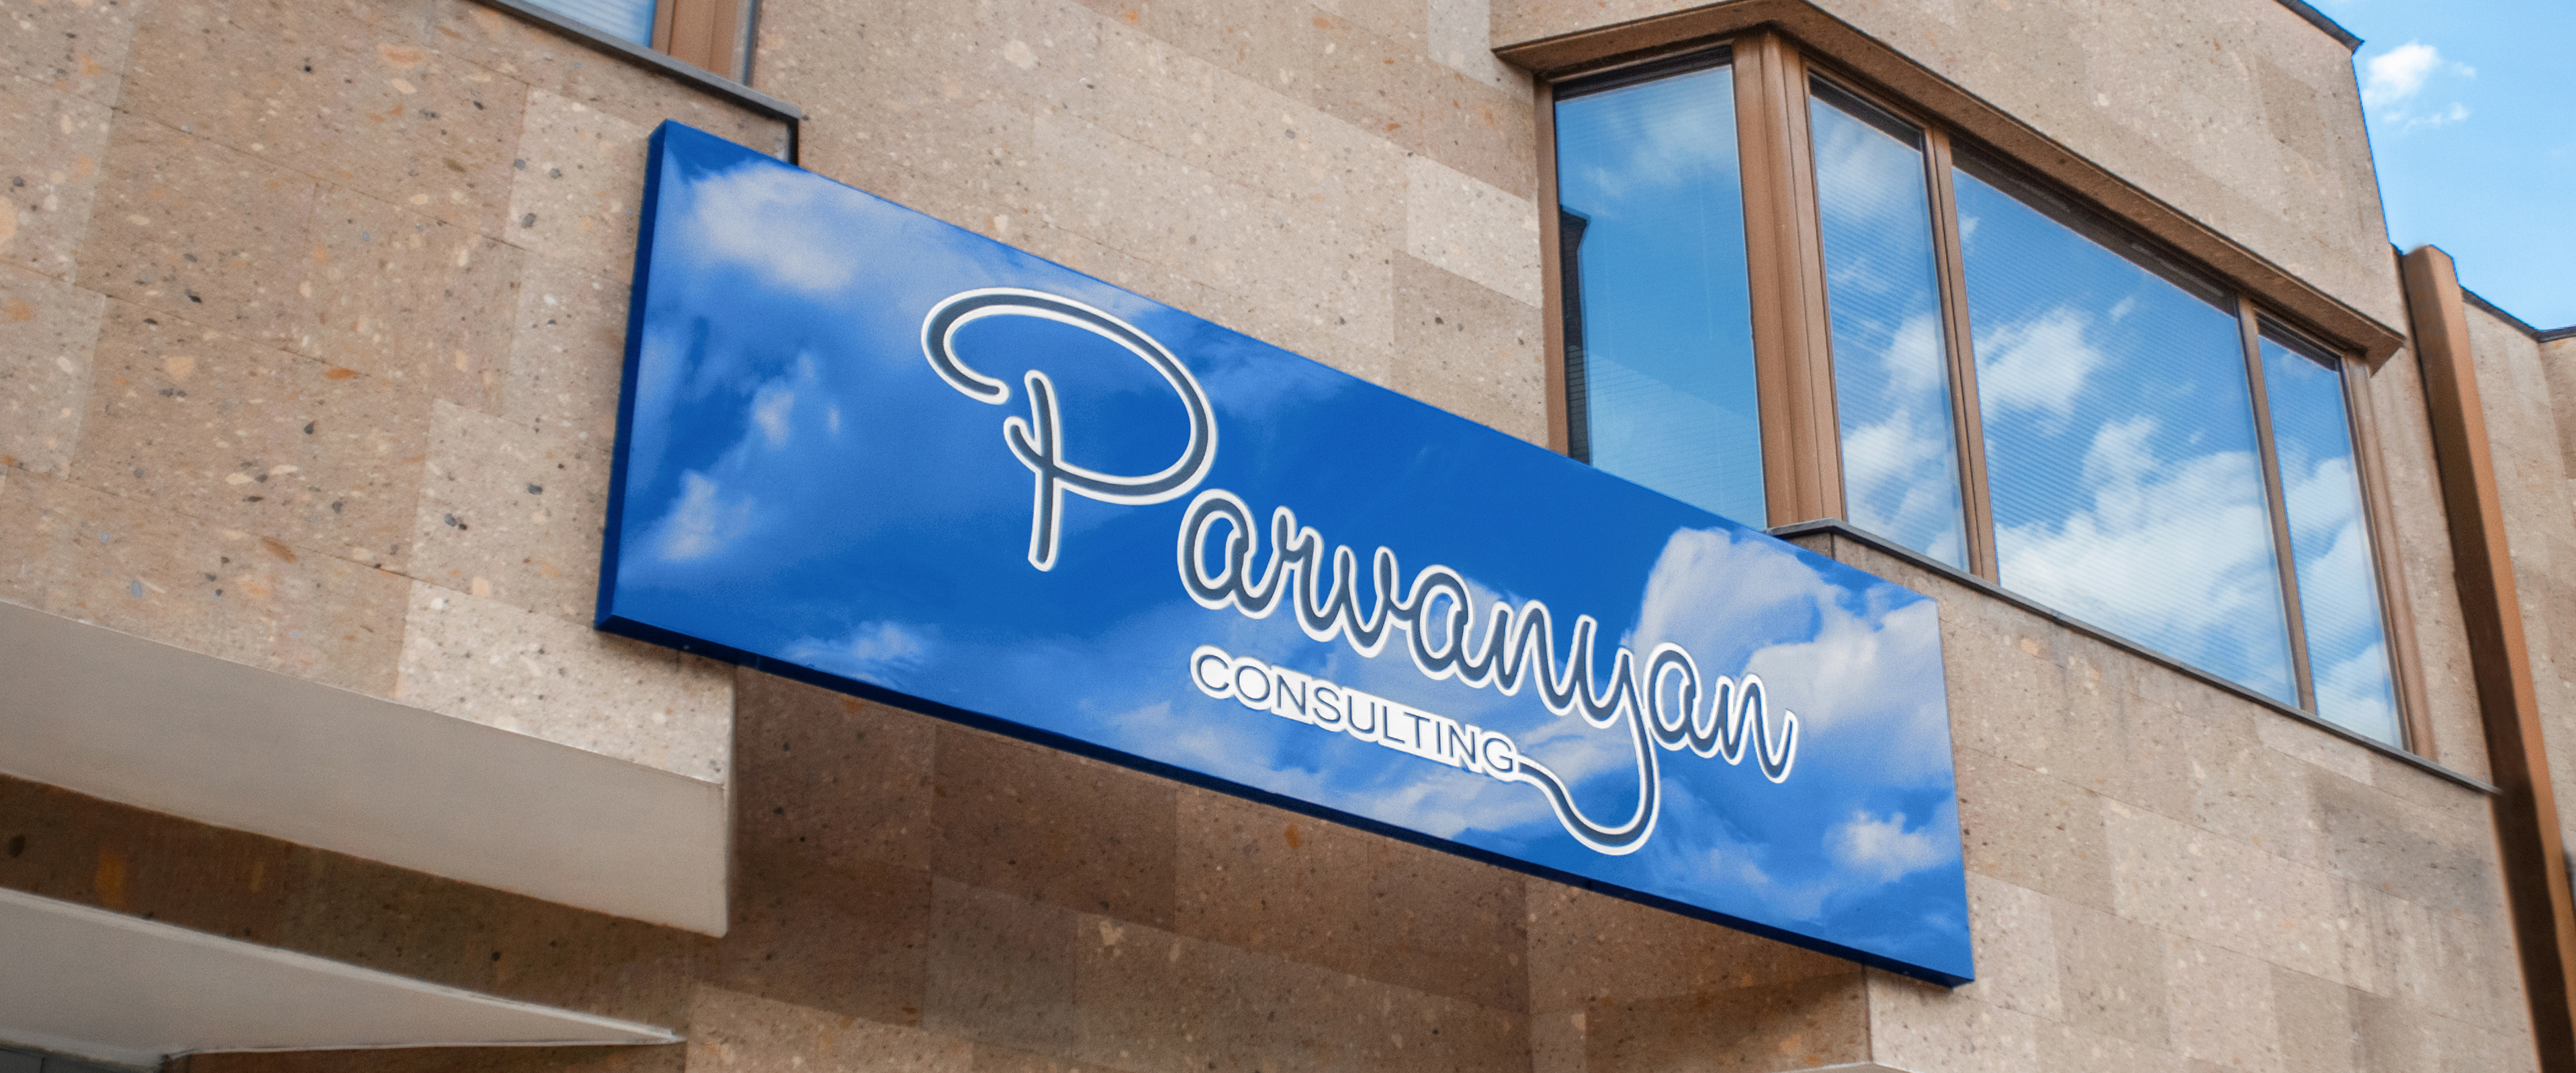 parvanyan consulting copy